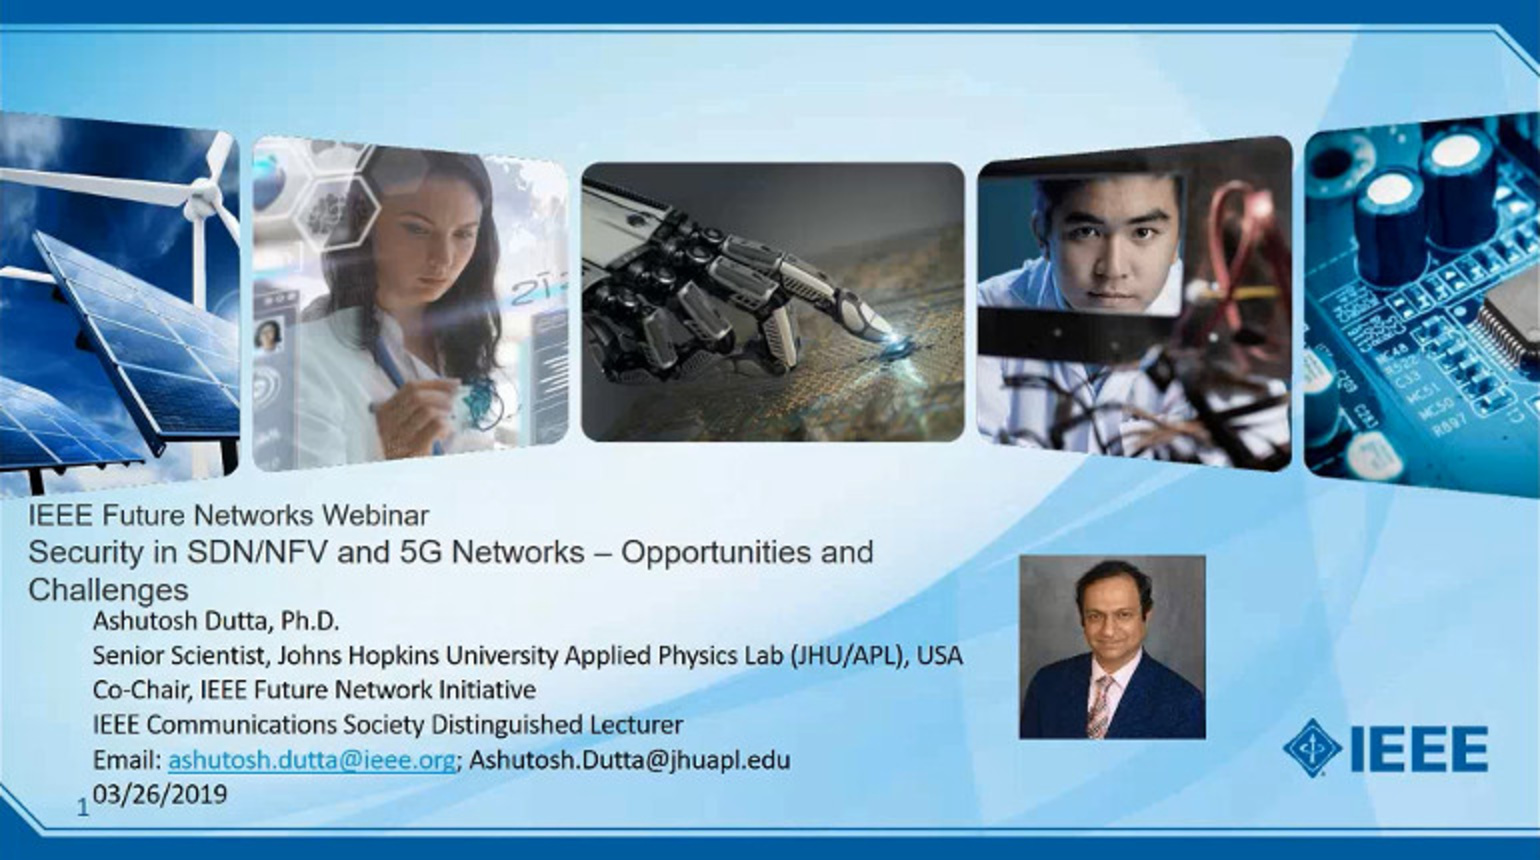 IEEE Future Networks: Security in SDN/NFV and 5G Networks - Opportunities and Challenges